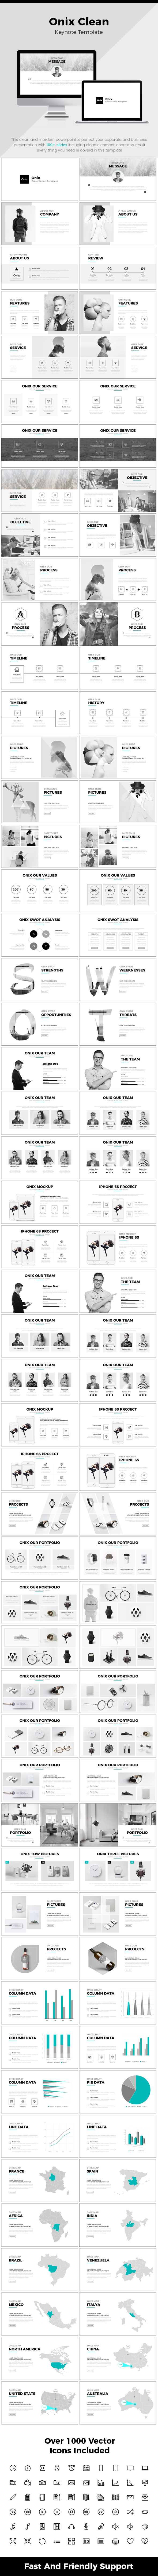 Onix Clean Keynote Template | Keynote Templates